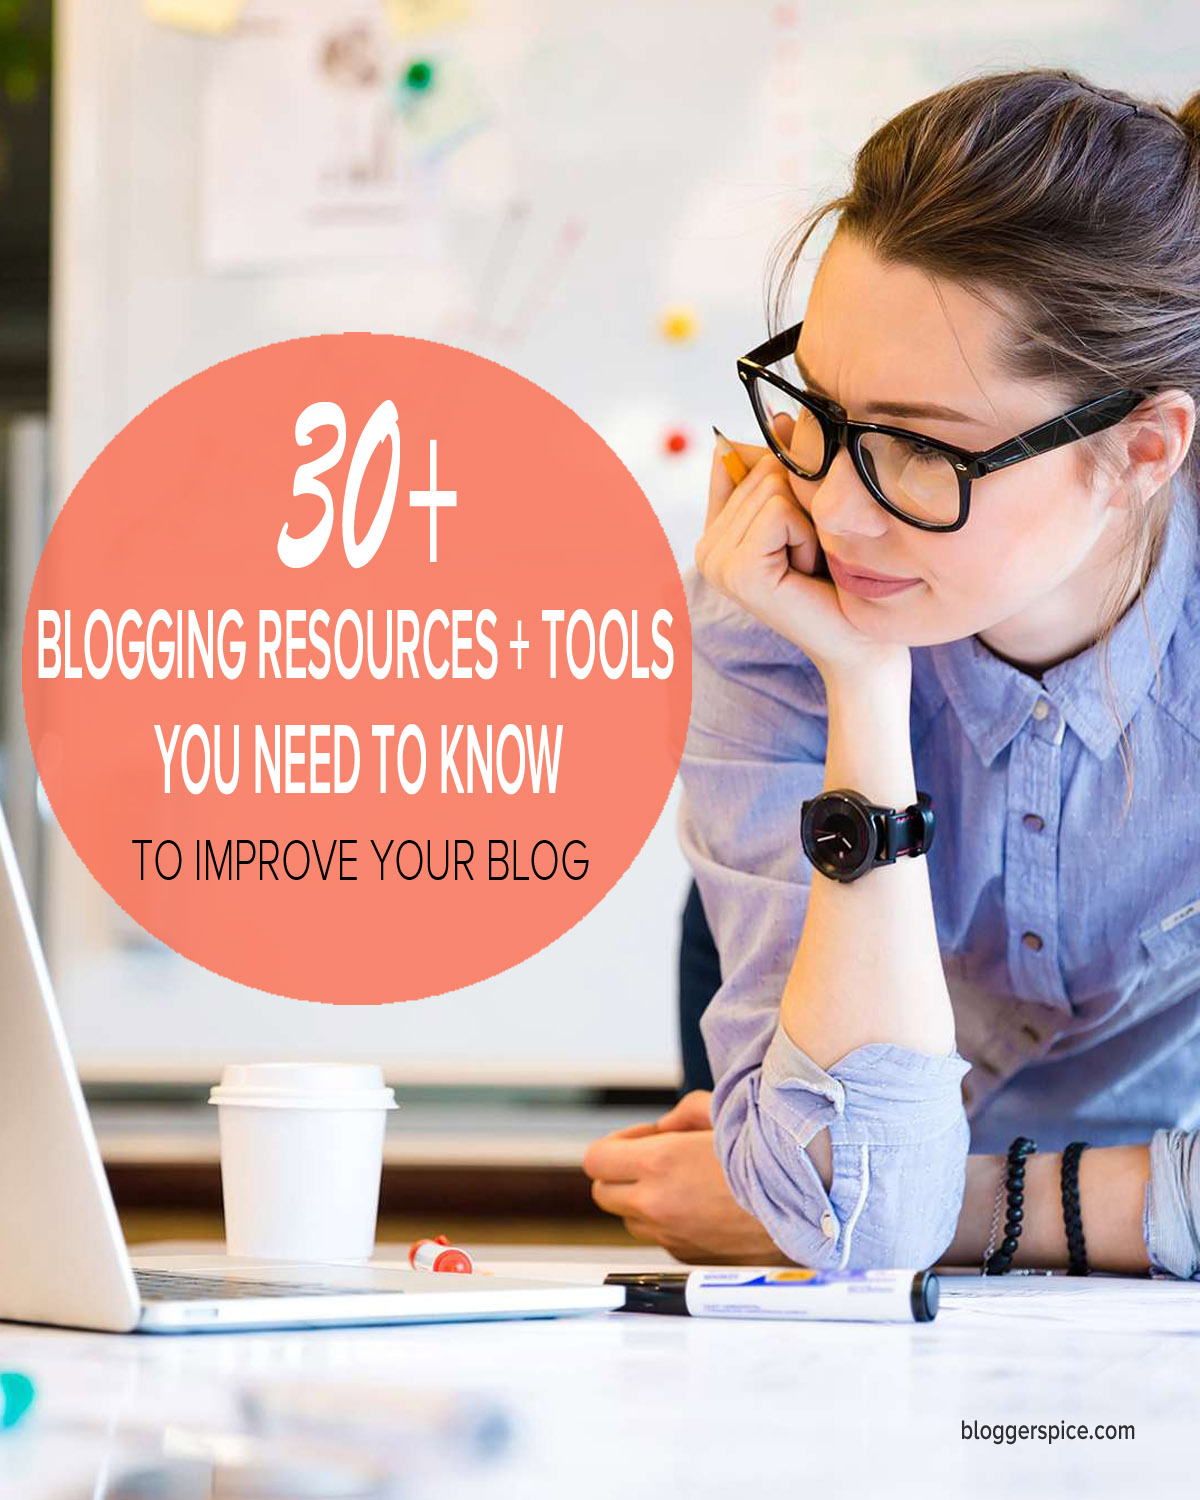 30+ Blogging Resources to Improve Your Blog